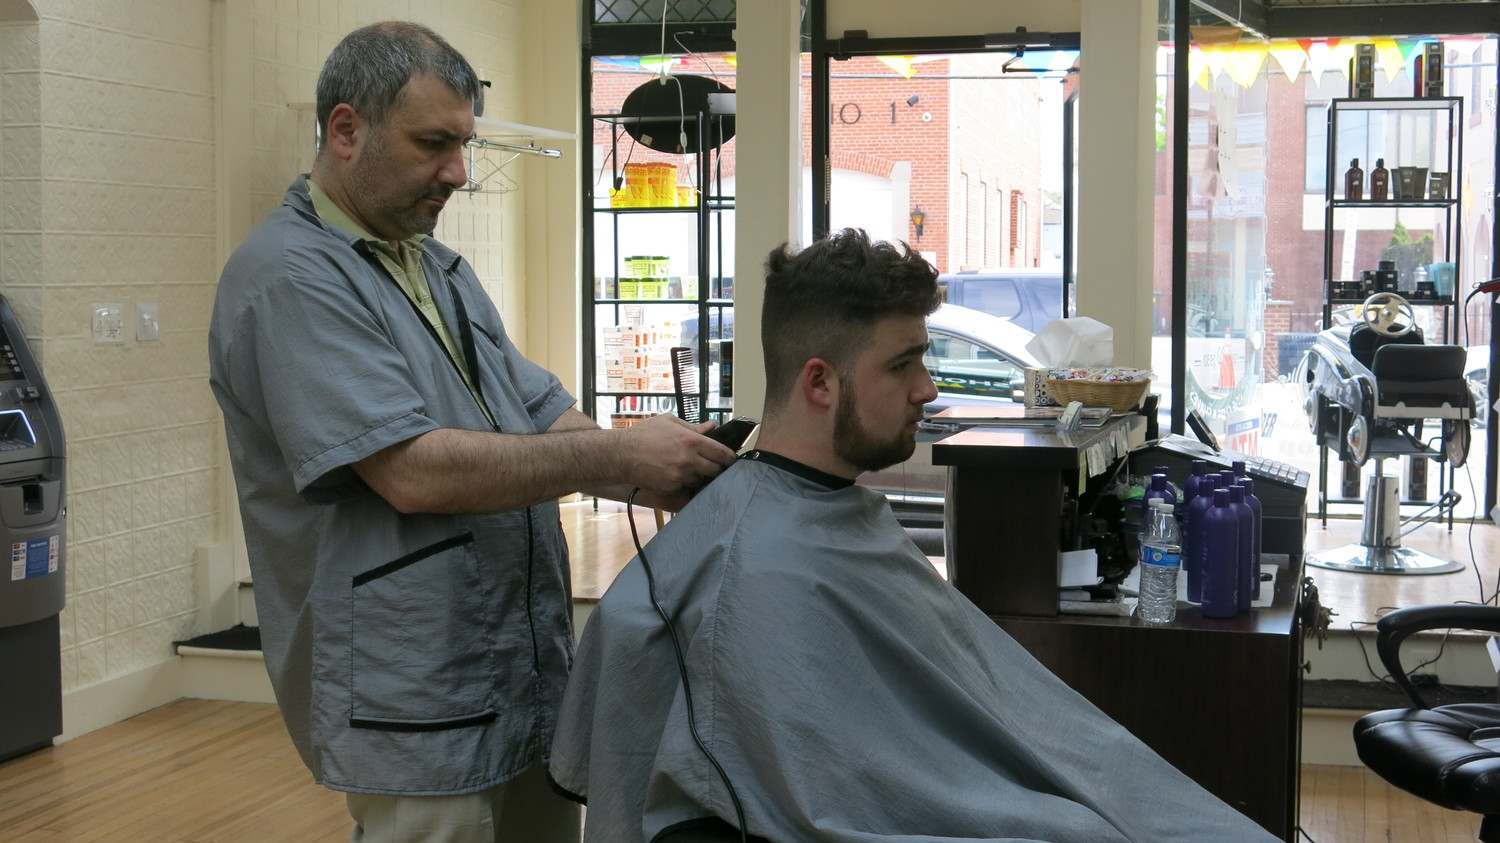 Alex Murdakhayev, the owner of Johnny's Barber Shop, worked to satisfy a new customer, Griffen Farrell.